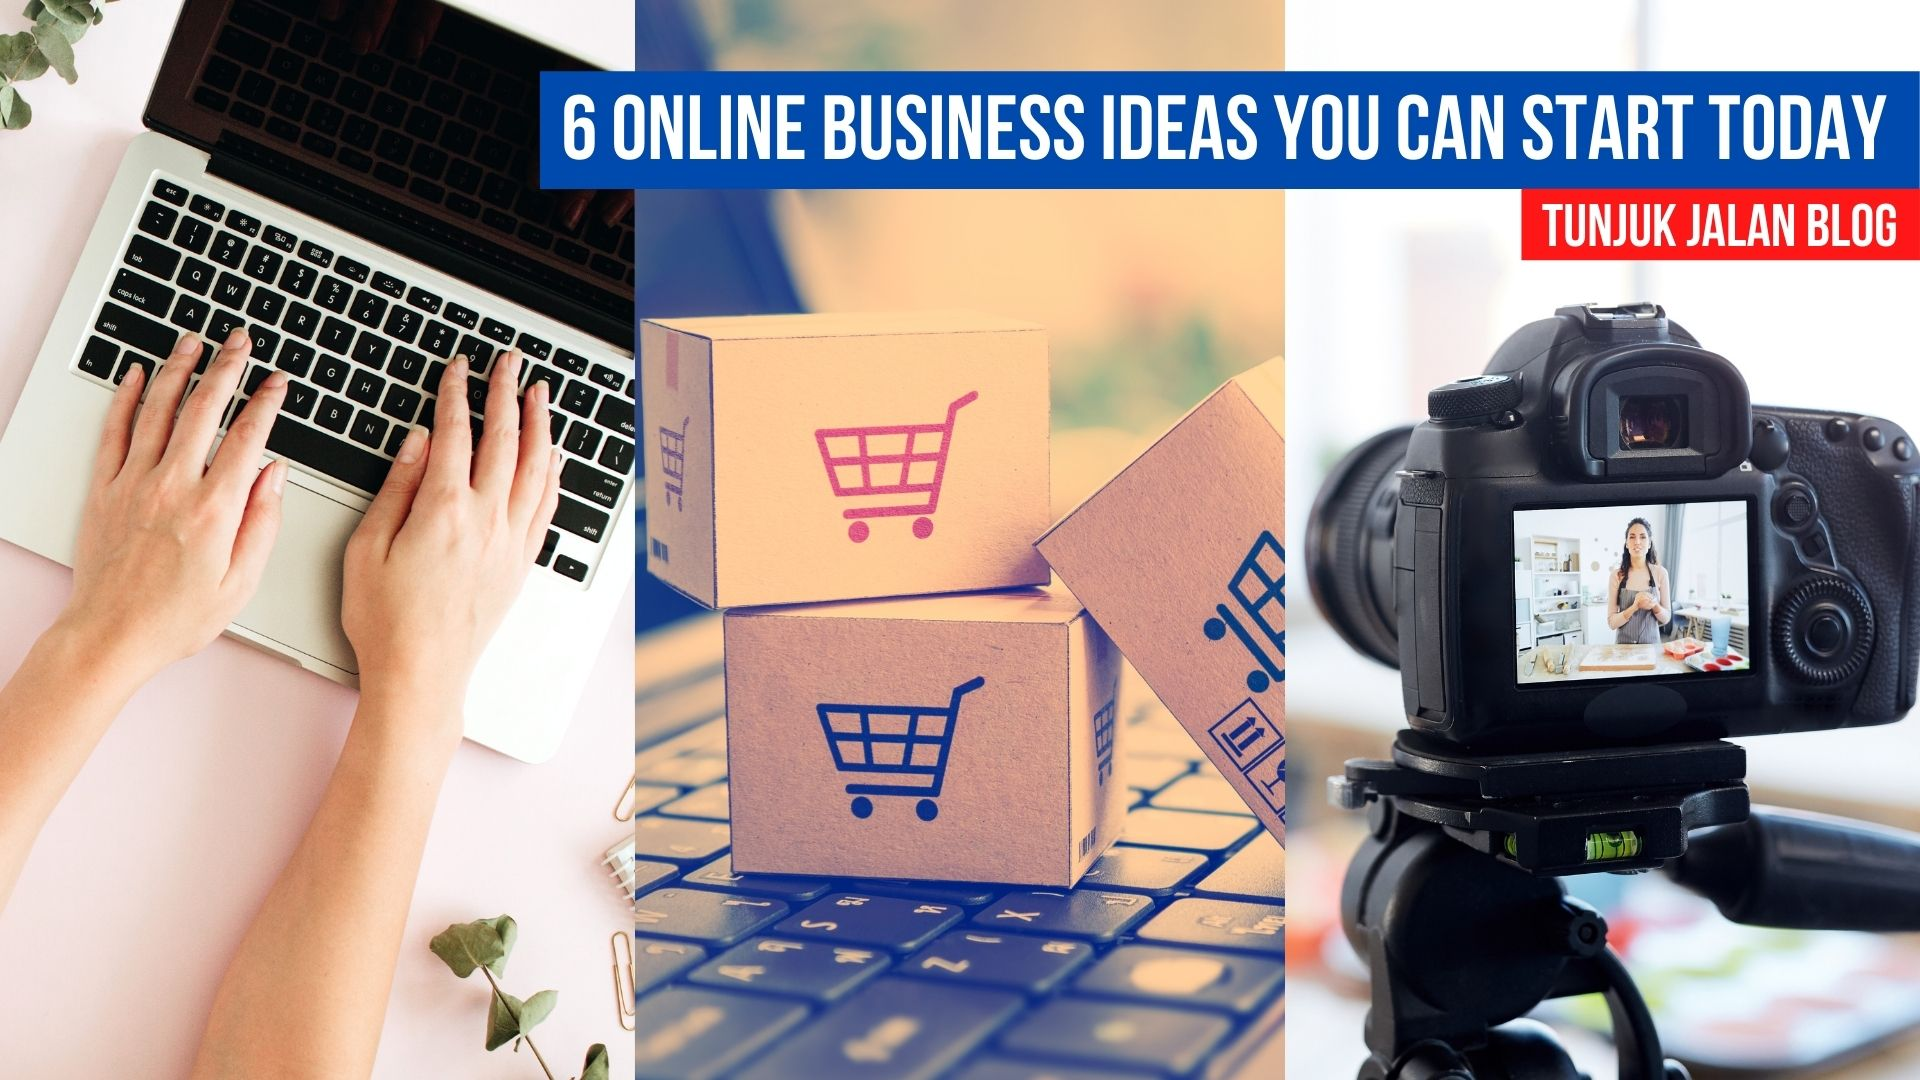 6 Online Business Ideas You Can Start Today – New Opportunity Awaits!